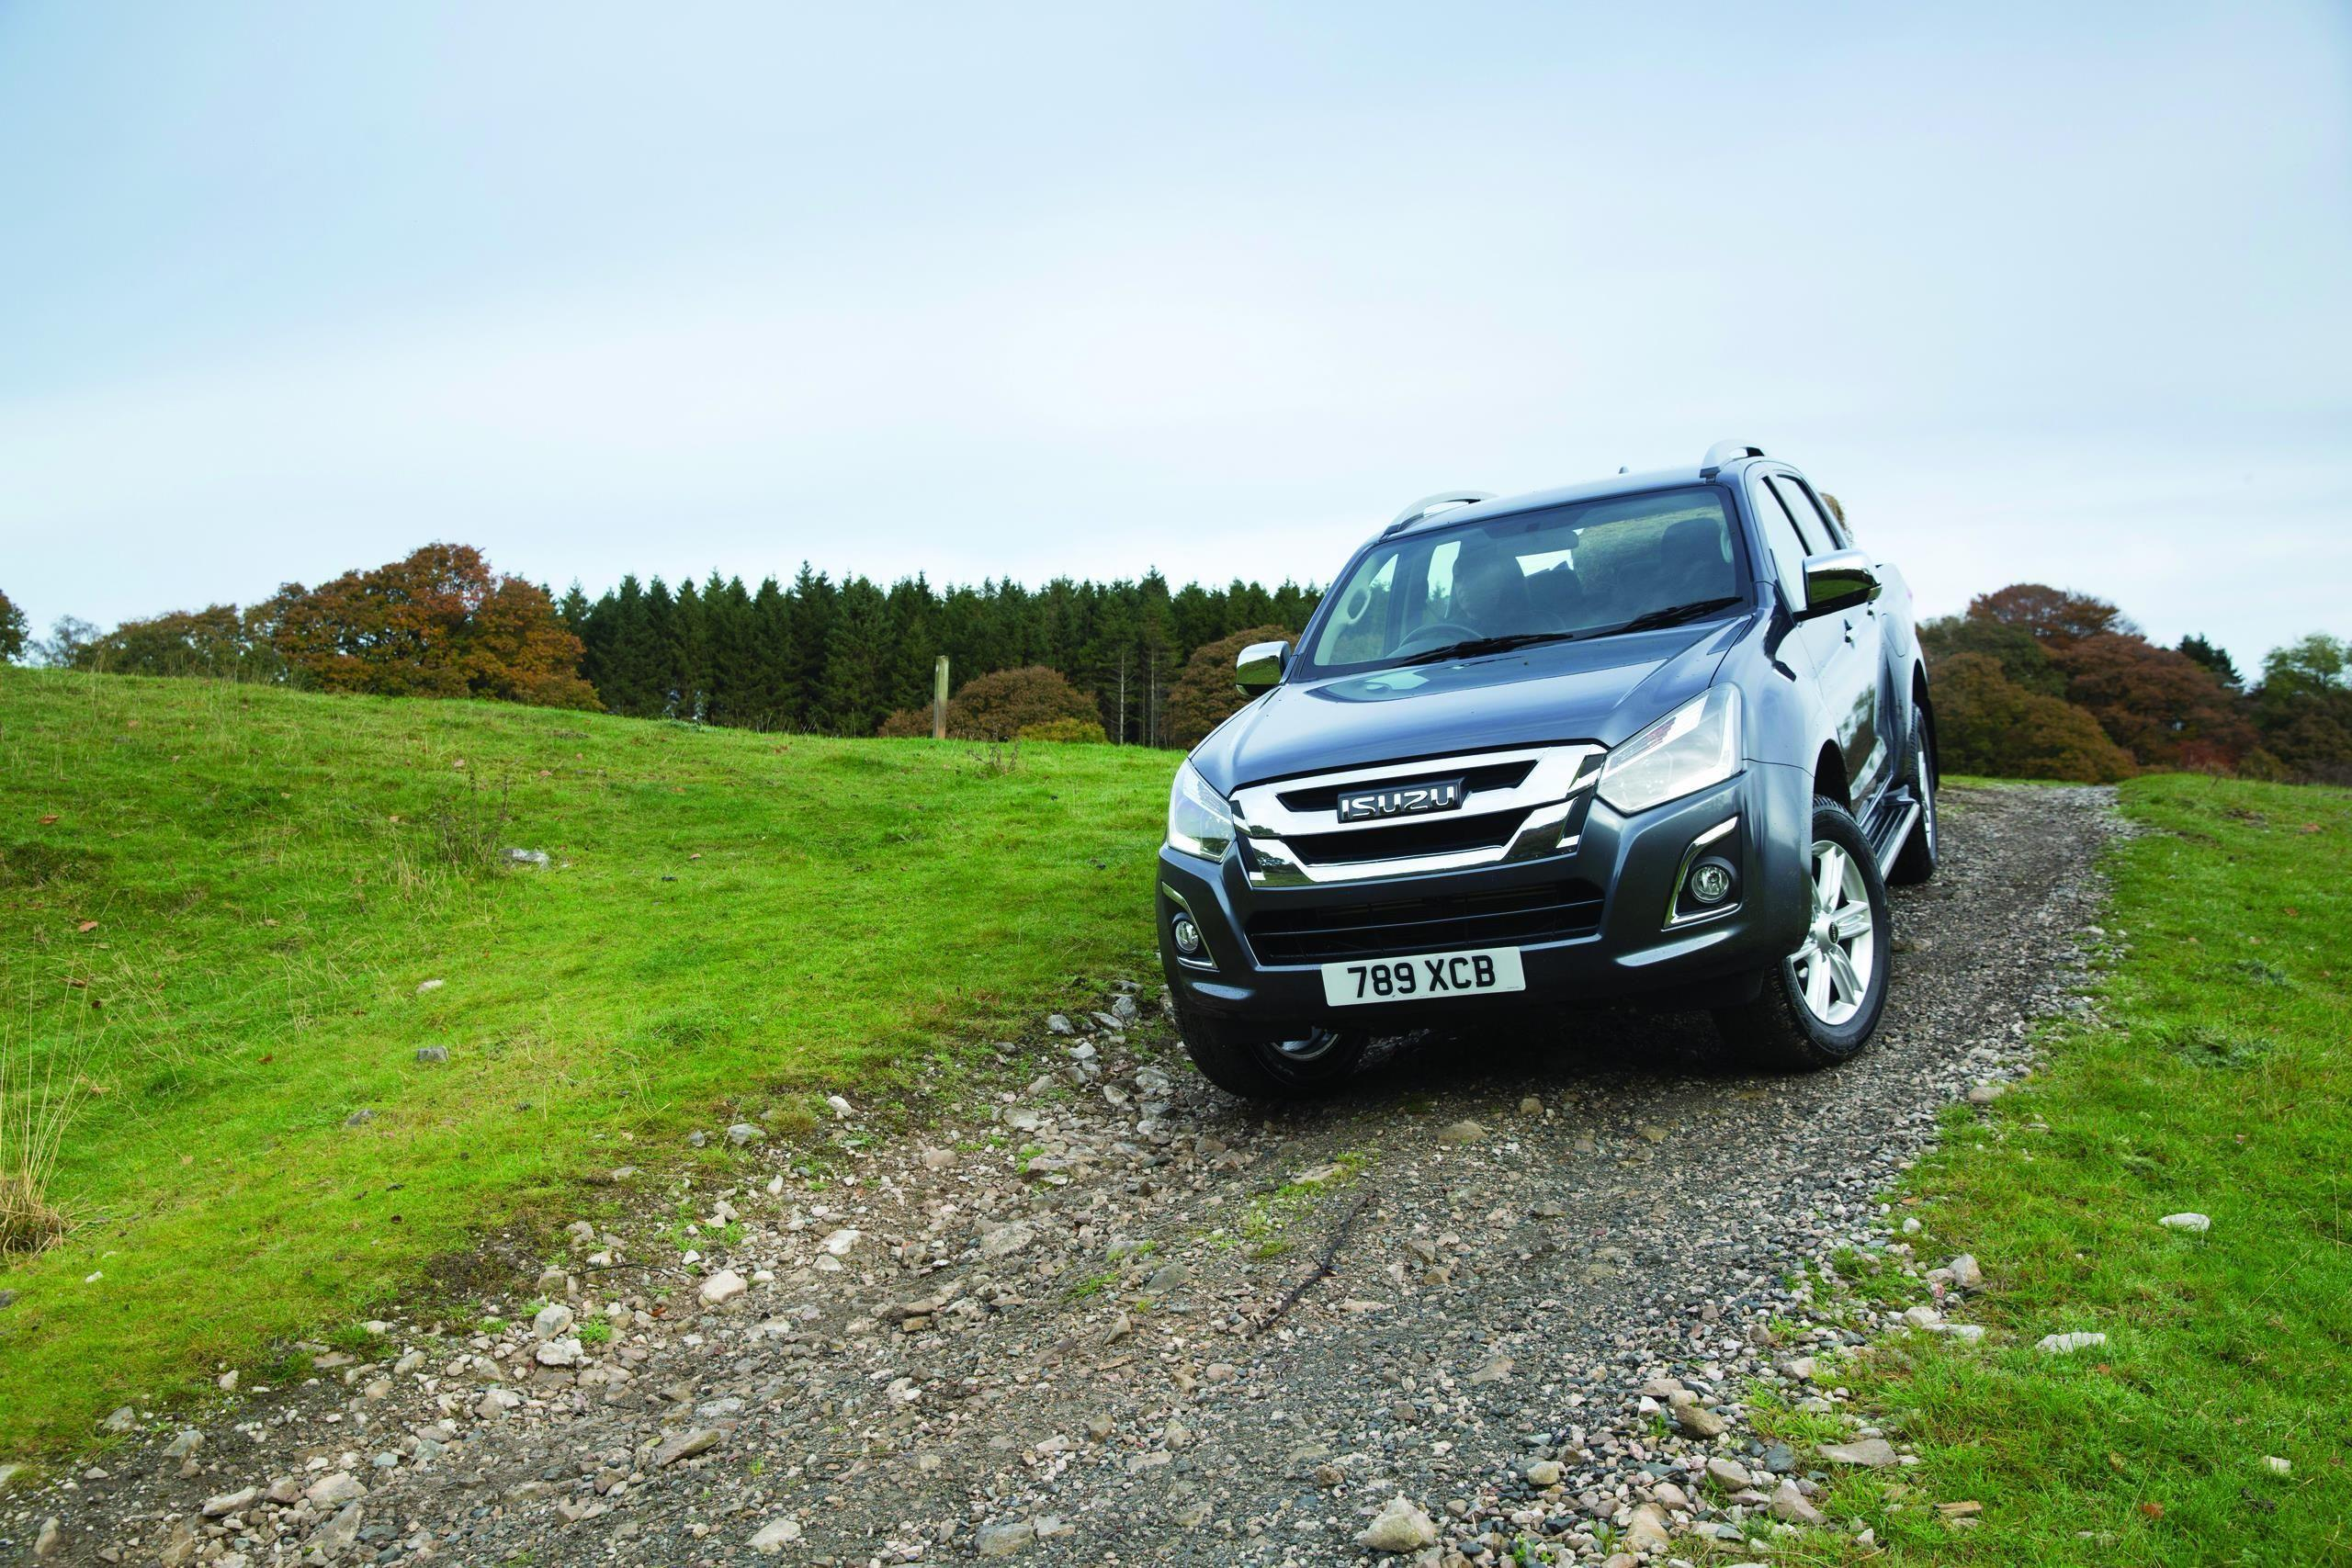 ISUZU D-MAX TRIUMPHS IN THE 2018 WHAT VAN? AWARDS